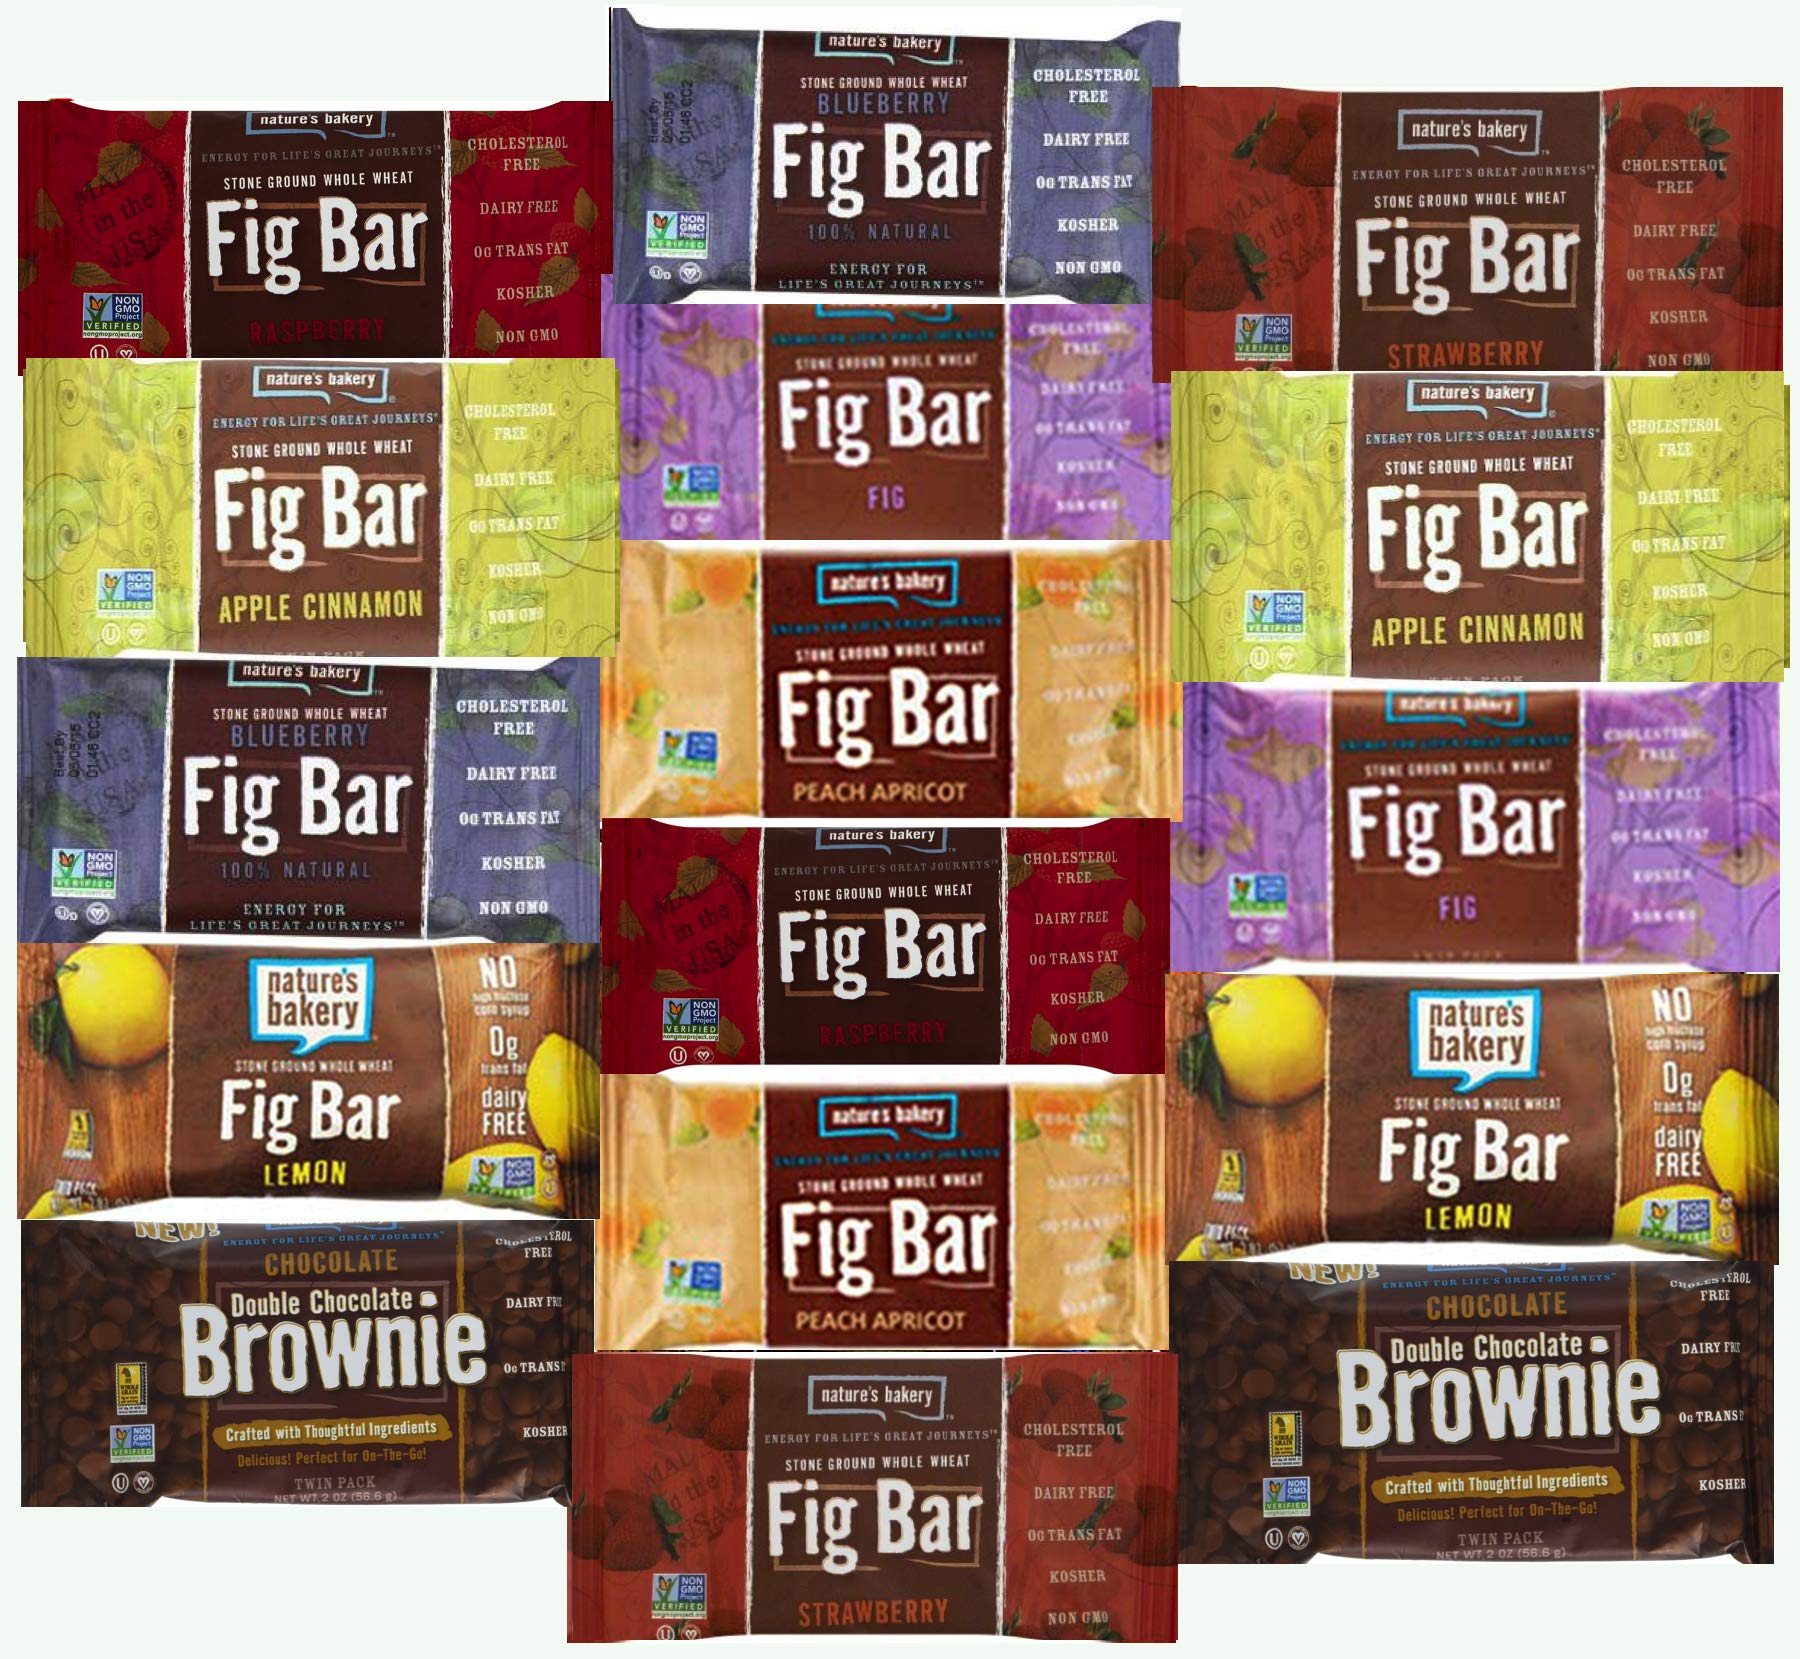 Nature's Bakery Stone Ground Whole Wheat Fig Bar (16 COUNT) Variety Pack Sampler, All Natural NON GMO Snack Food (16 Count) by LA Signature (Image #2)